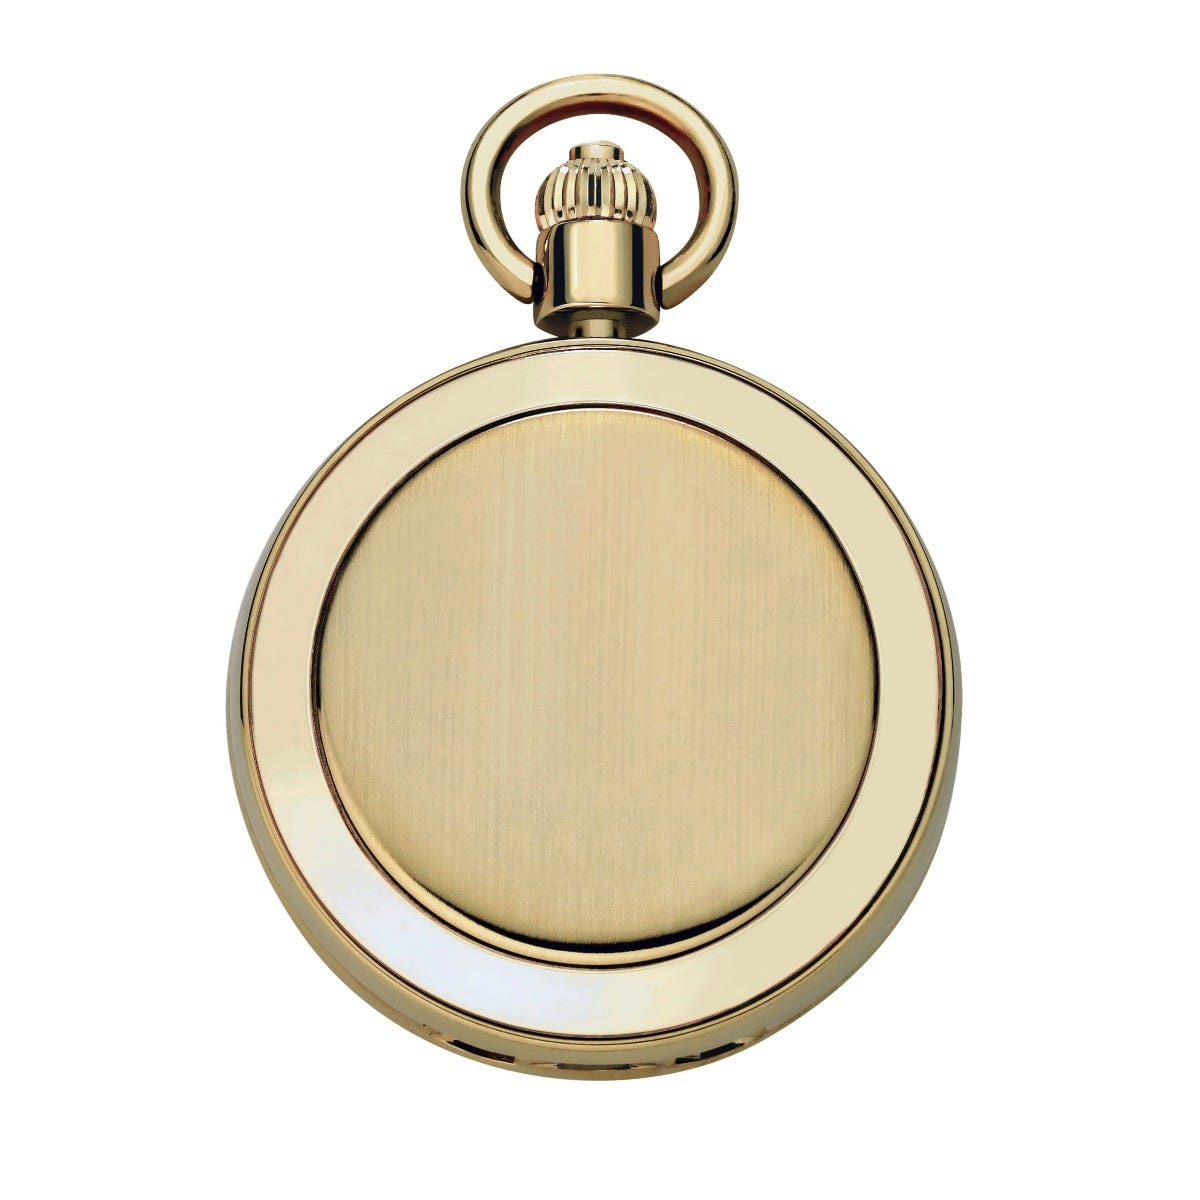 Satin & Polished Bezel Pocket Watch